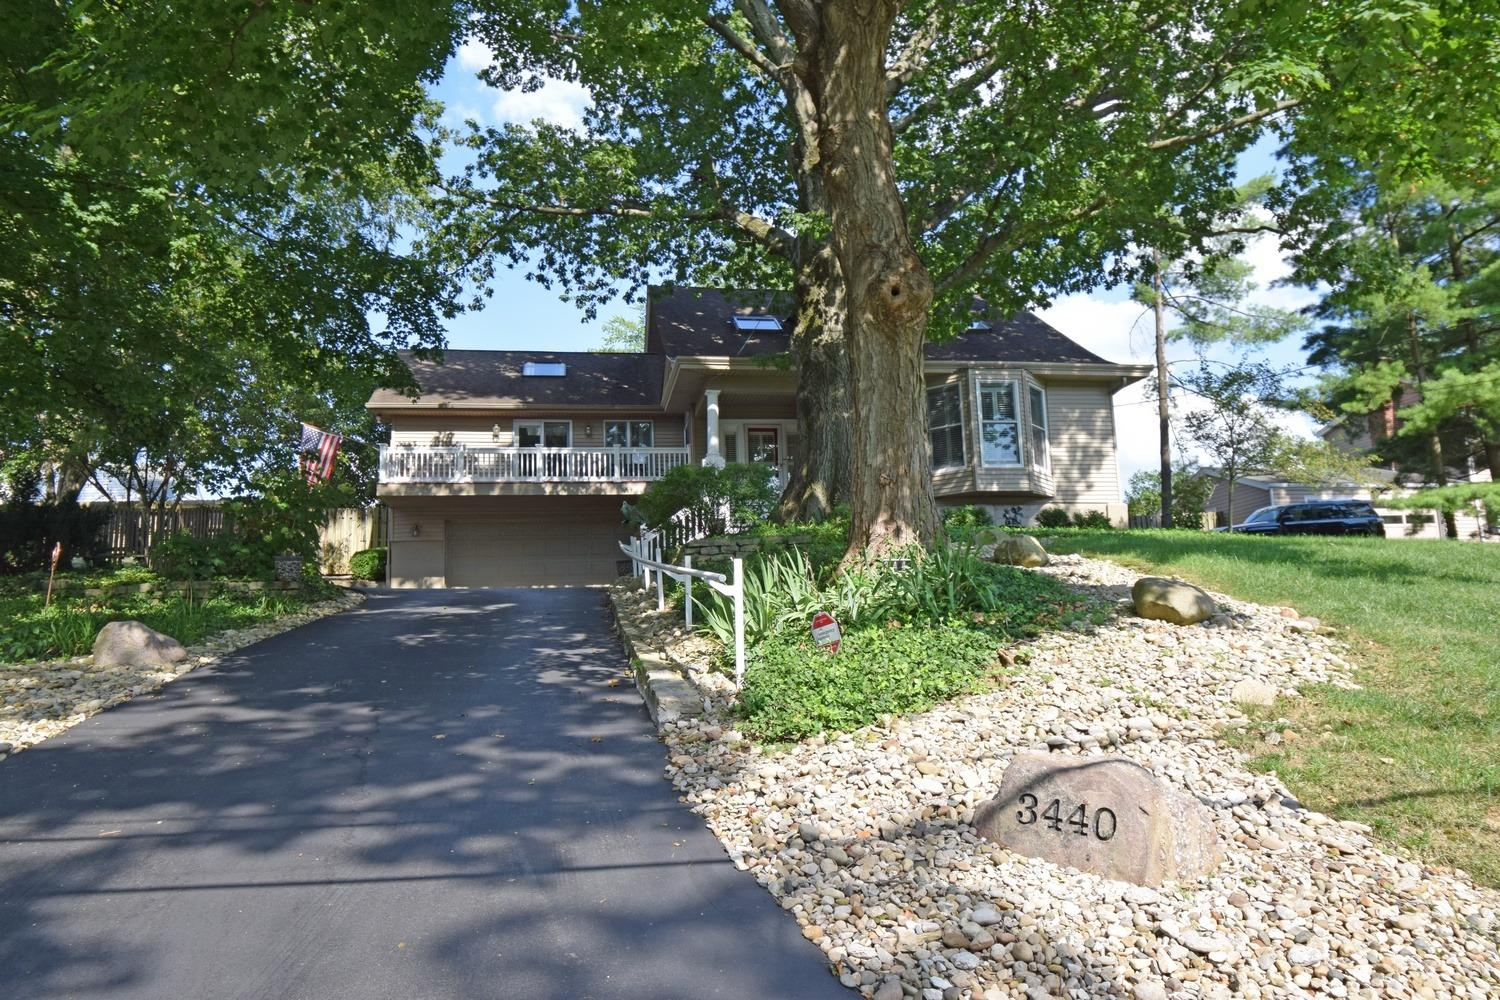 3440 Custer St Mt. Lookout, OH